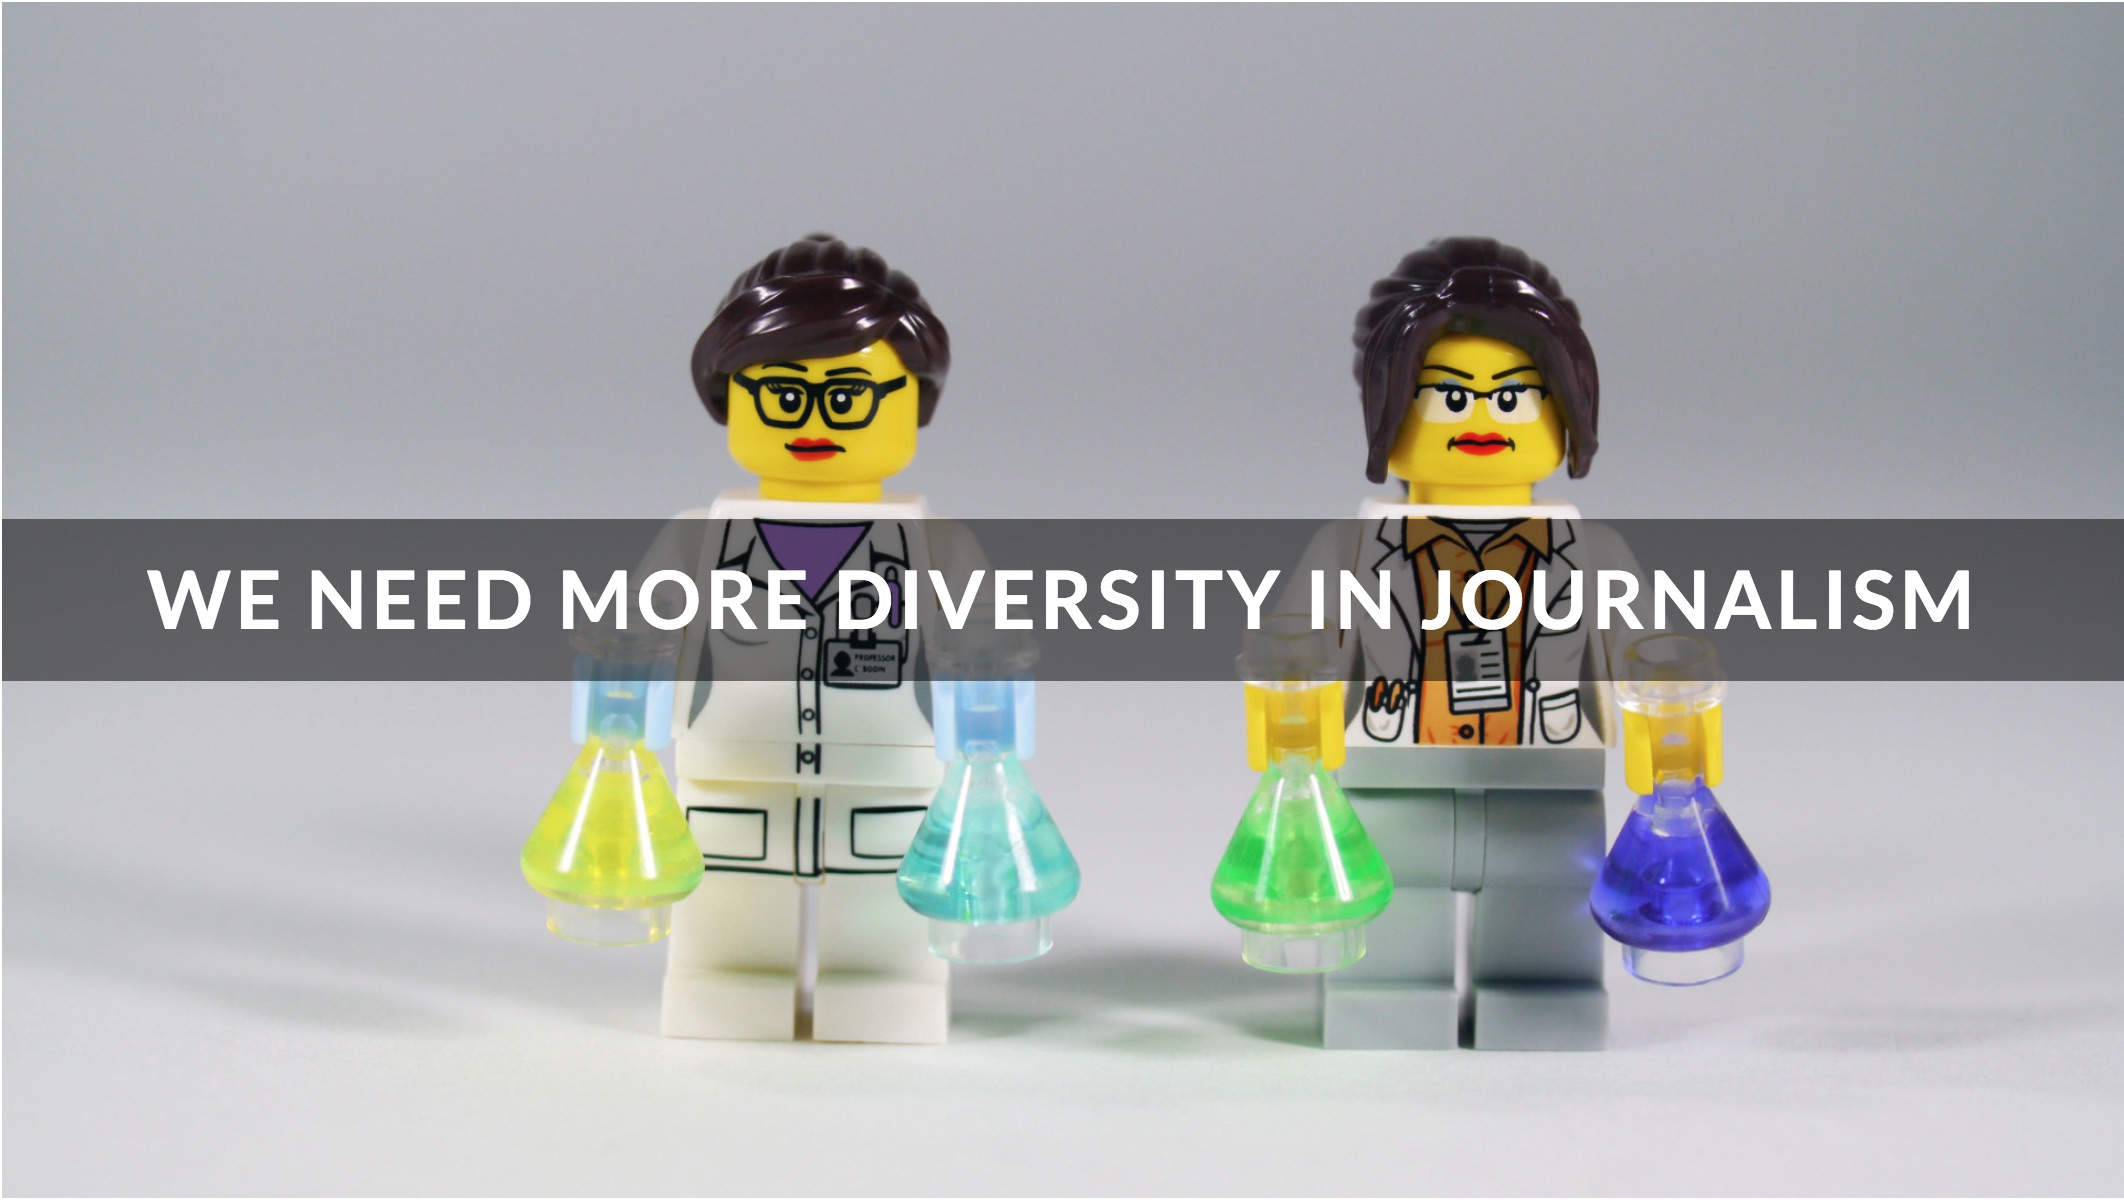 Photo of female scientist Lego figures with a text overlay that says 'We need more diversity in journalism.'